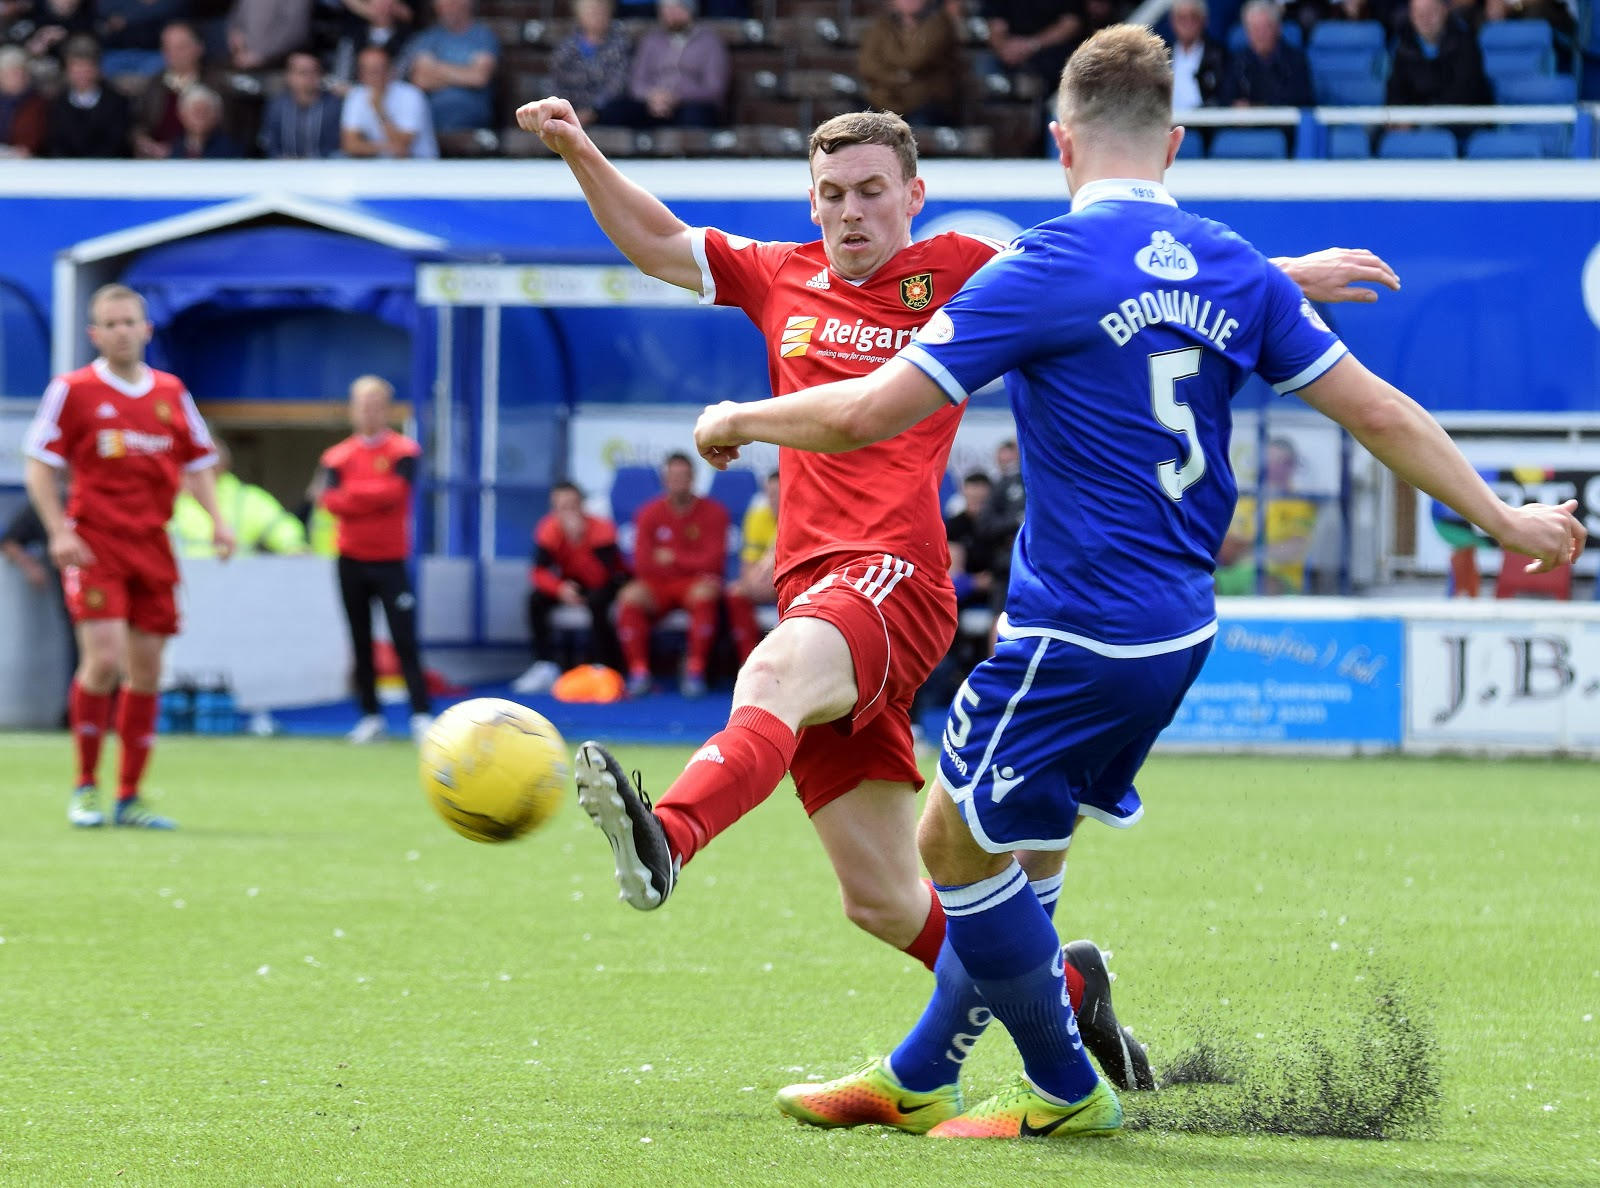 albion rovers cowdenbeath sofascore sofa bed folding mattress groundhopper2000 queen of the south v